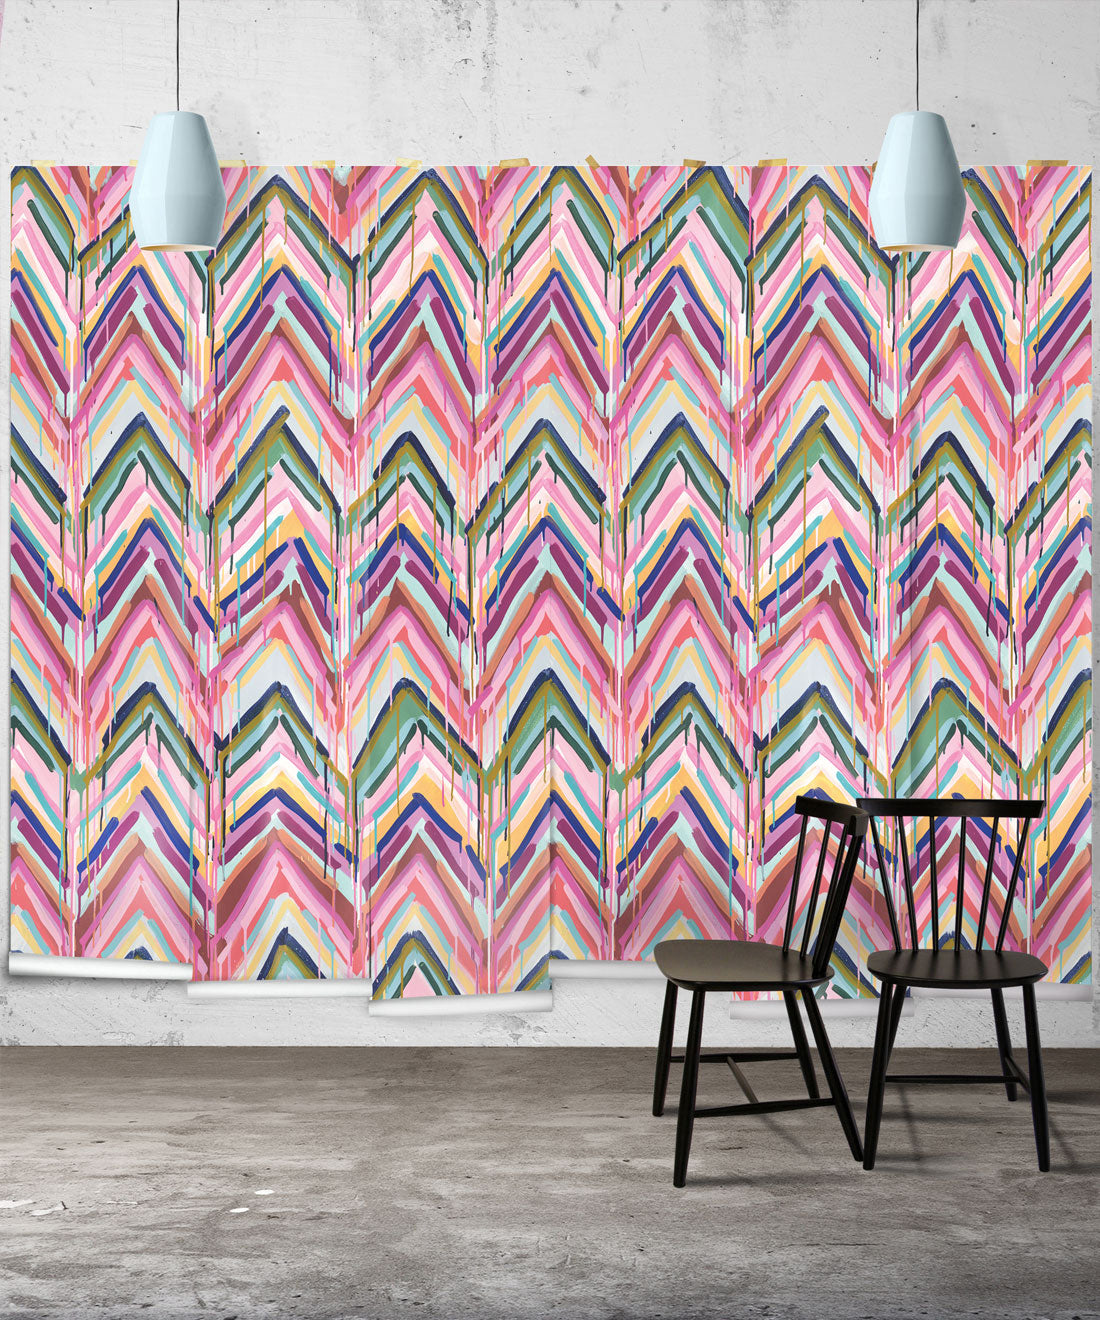 Tiff Manuell Collaboration with Milton and King | Beautiful Wallpaper